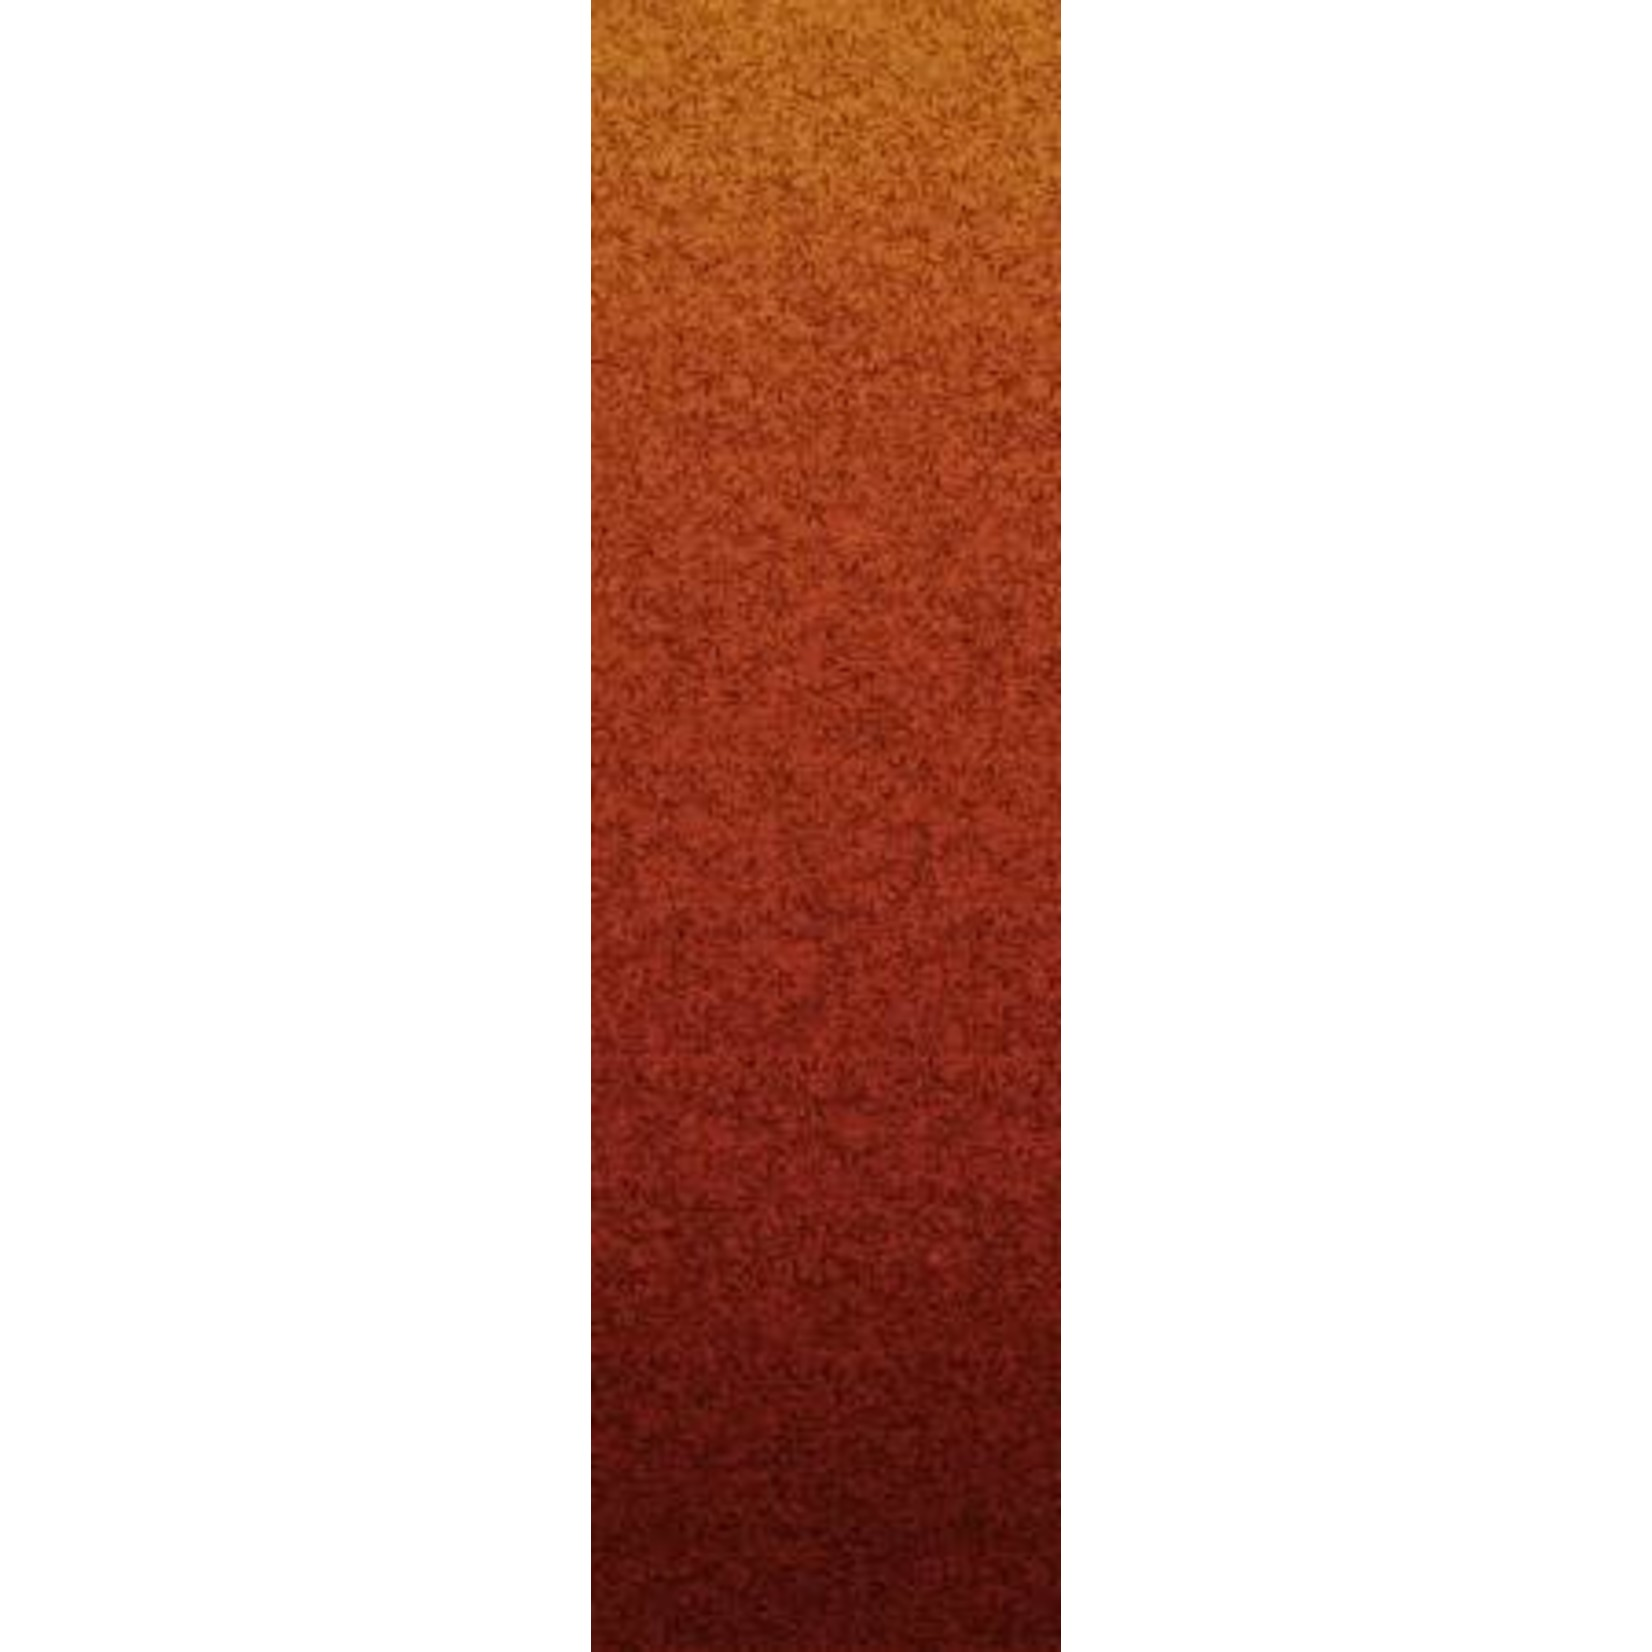 TIMELESS TREASURES 50cm  TAPESTRY, Wine Ombre, PER CM or $20/M